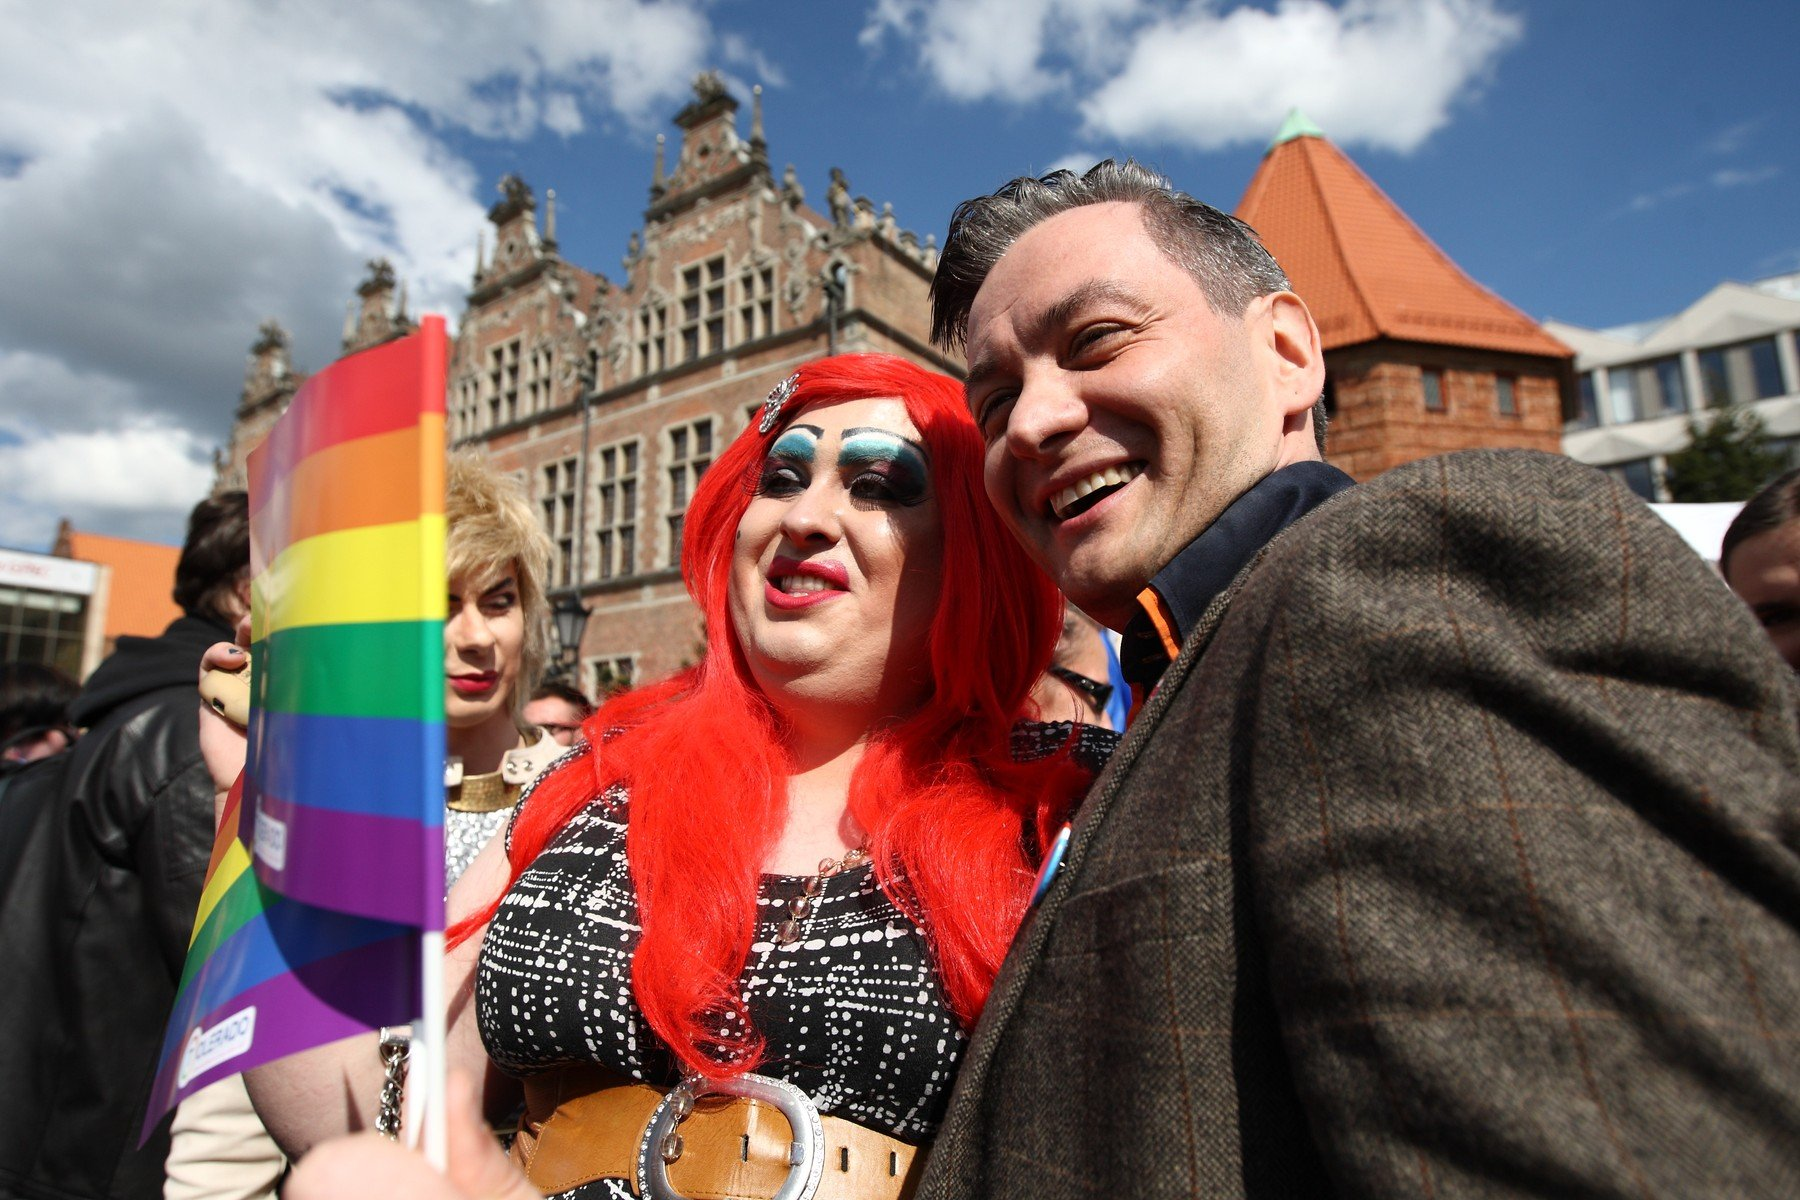 May 30, 2015 - Gdansk, POLAND - Gdansk , Poland 30th, May 2015 First Equality March in 3city organised by LGBT activists held in Gdansk. Participants walked by the city with rainbow flags, and equality slogans. Robert Biedron Mayor of Slupsk and first openly declared gay Polish Parliament member takes part in the march, Image: 246860995, License: Rights-managed, Restrictions: * France Rights OUT *, Model Release: no, Credit line: Profimedia, Zuma Press - News